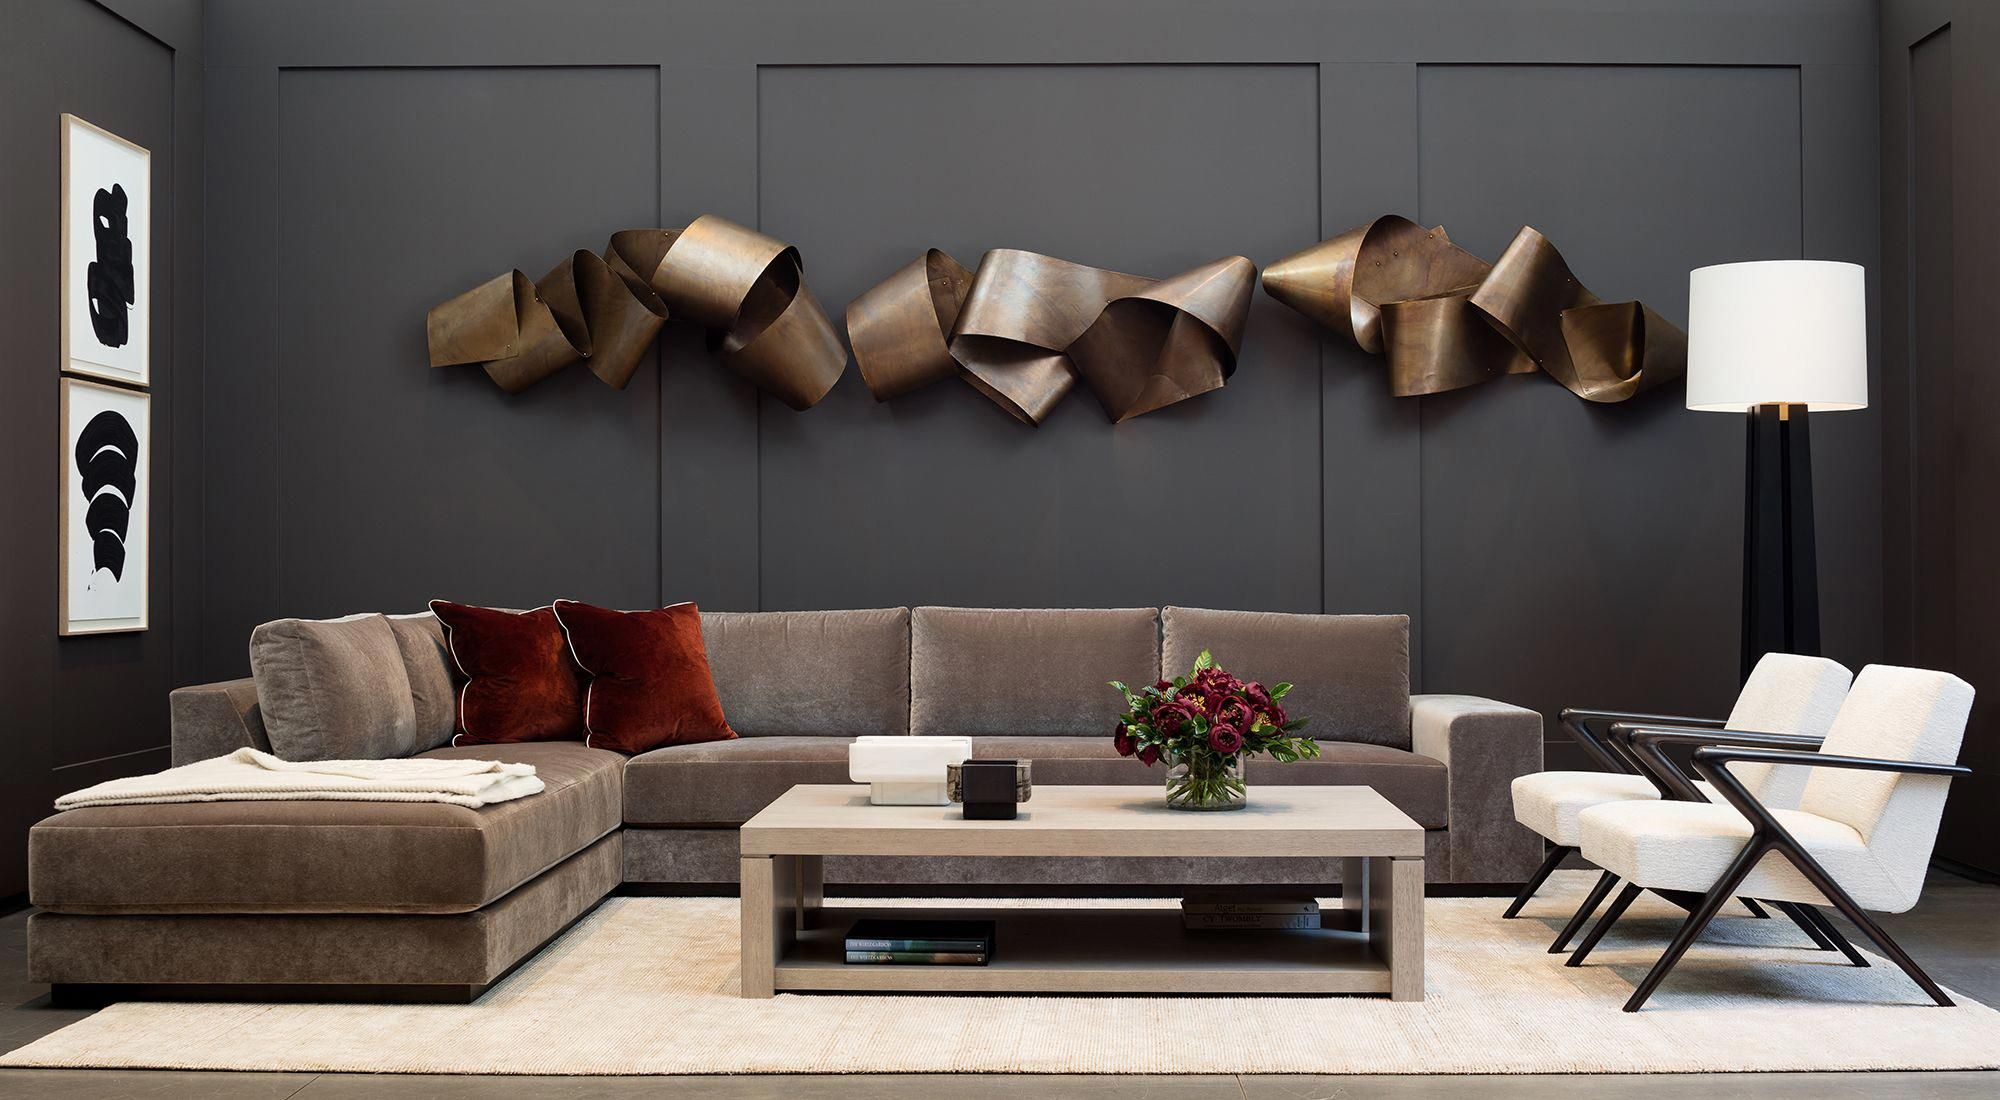 45+ Wall art design for living room ideas in 2021